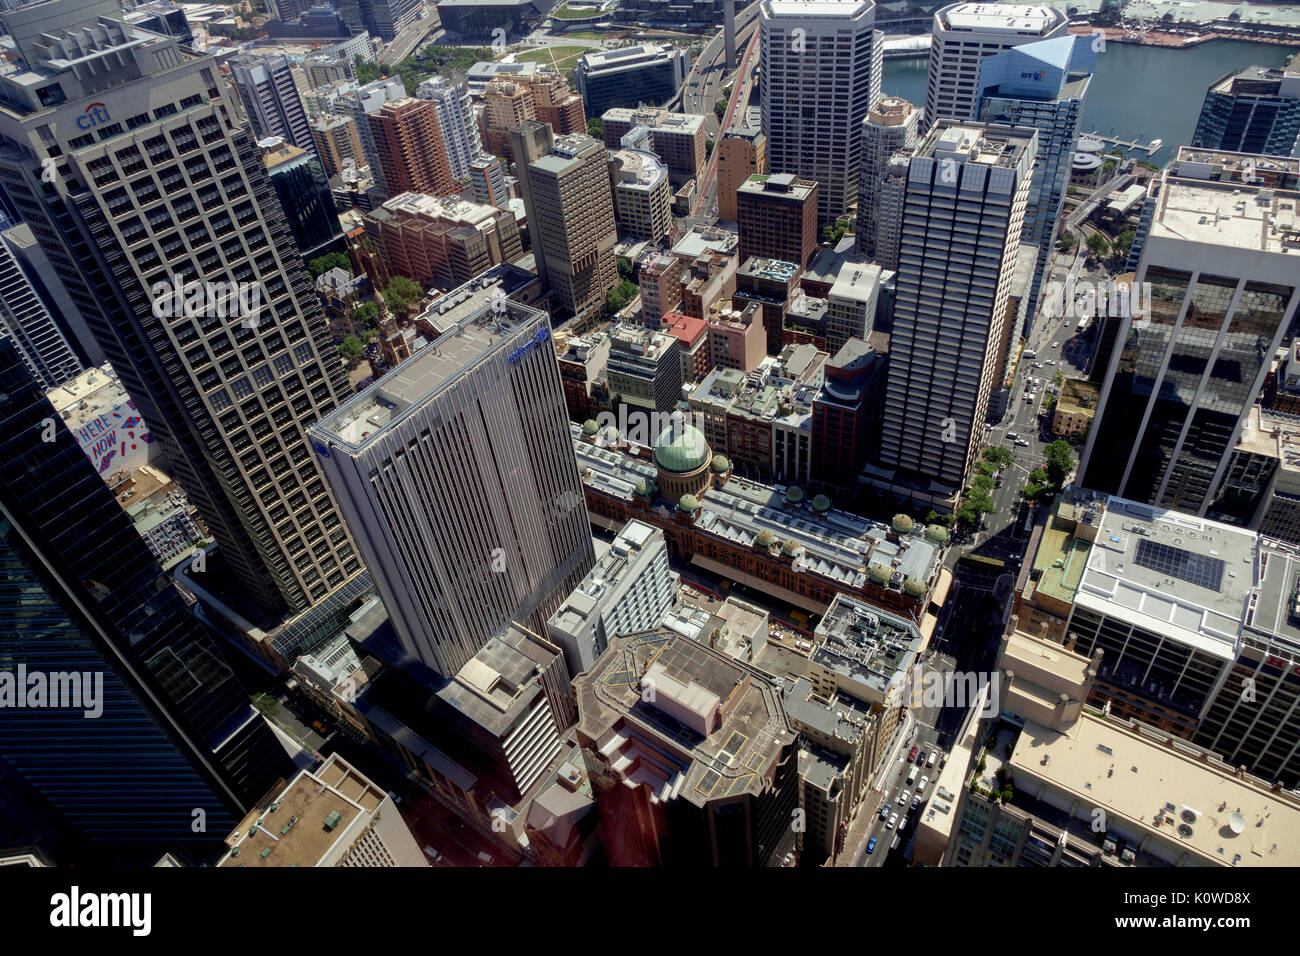 The Aerial View Of The Central Business District (CBD) From Sydney Tower Eye Included Is The Histroic Queen Victoria Building Sydney New South Wales A - Stock Image